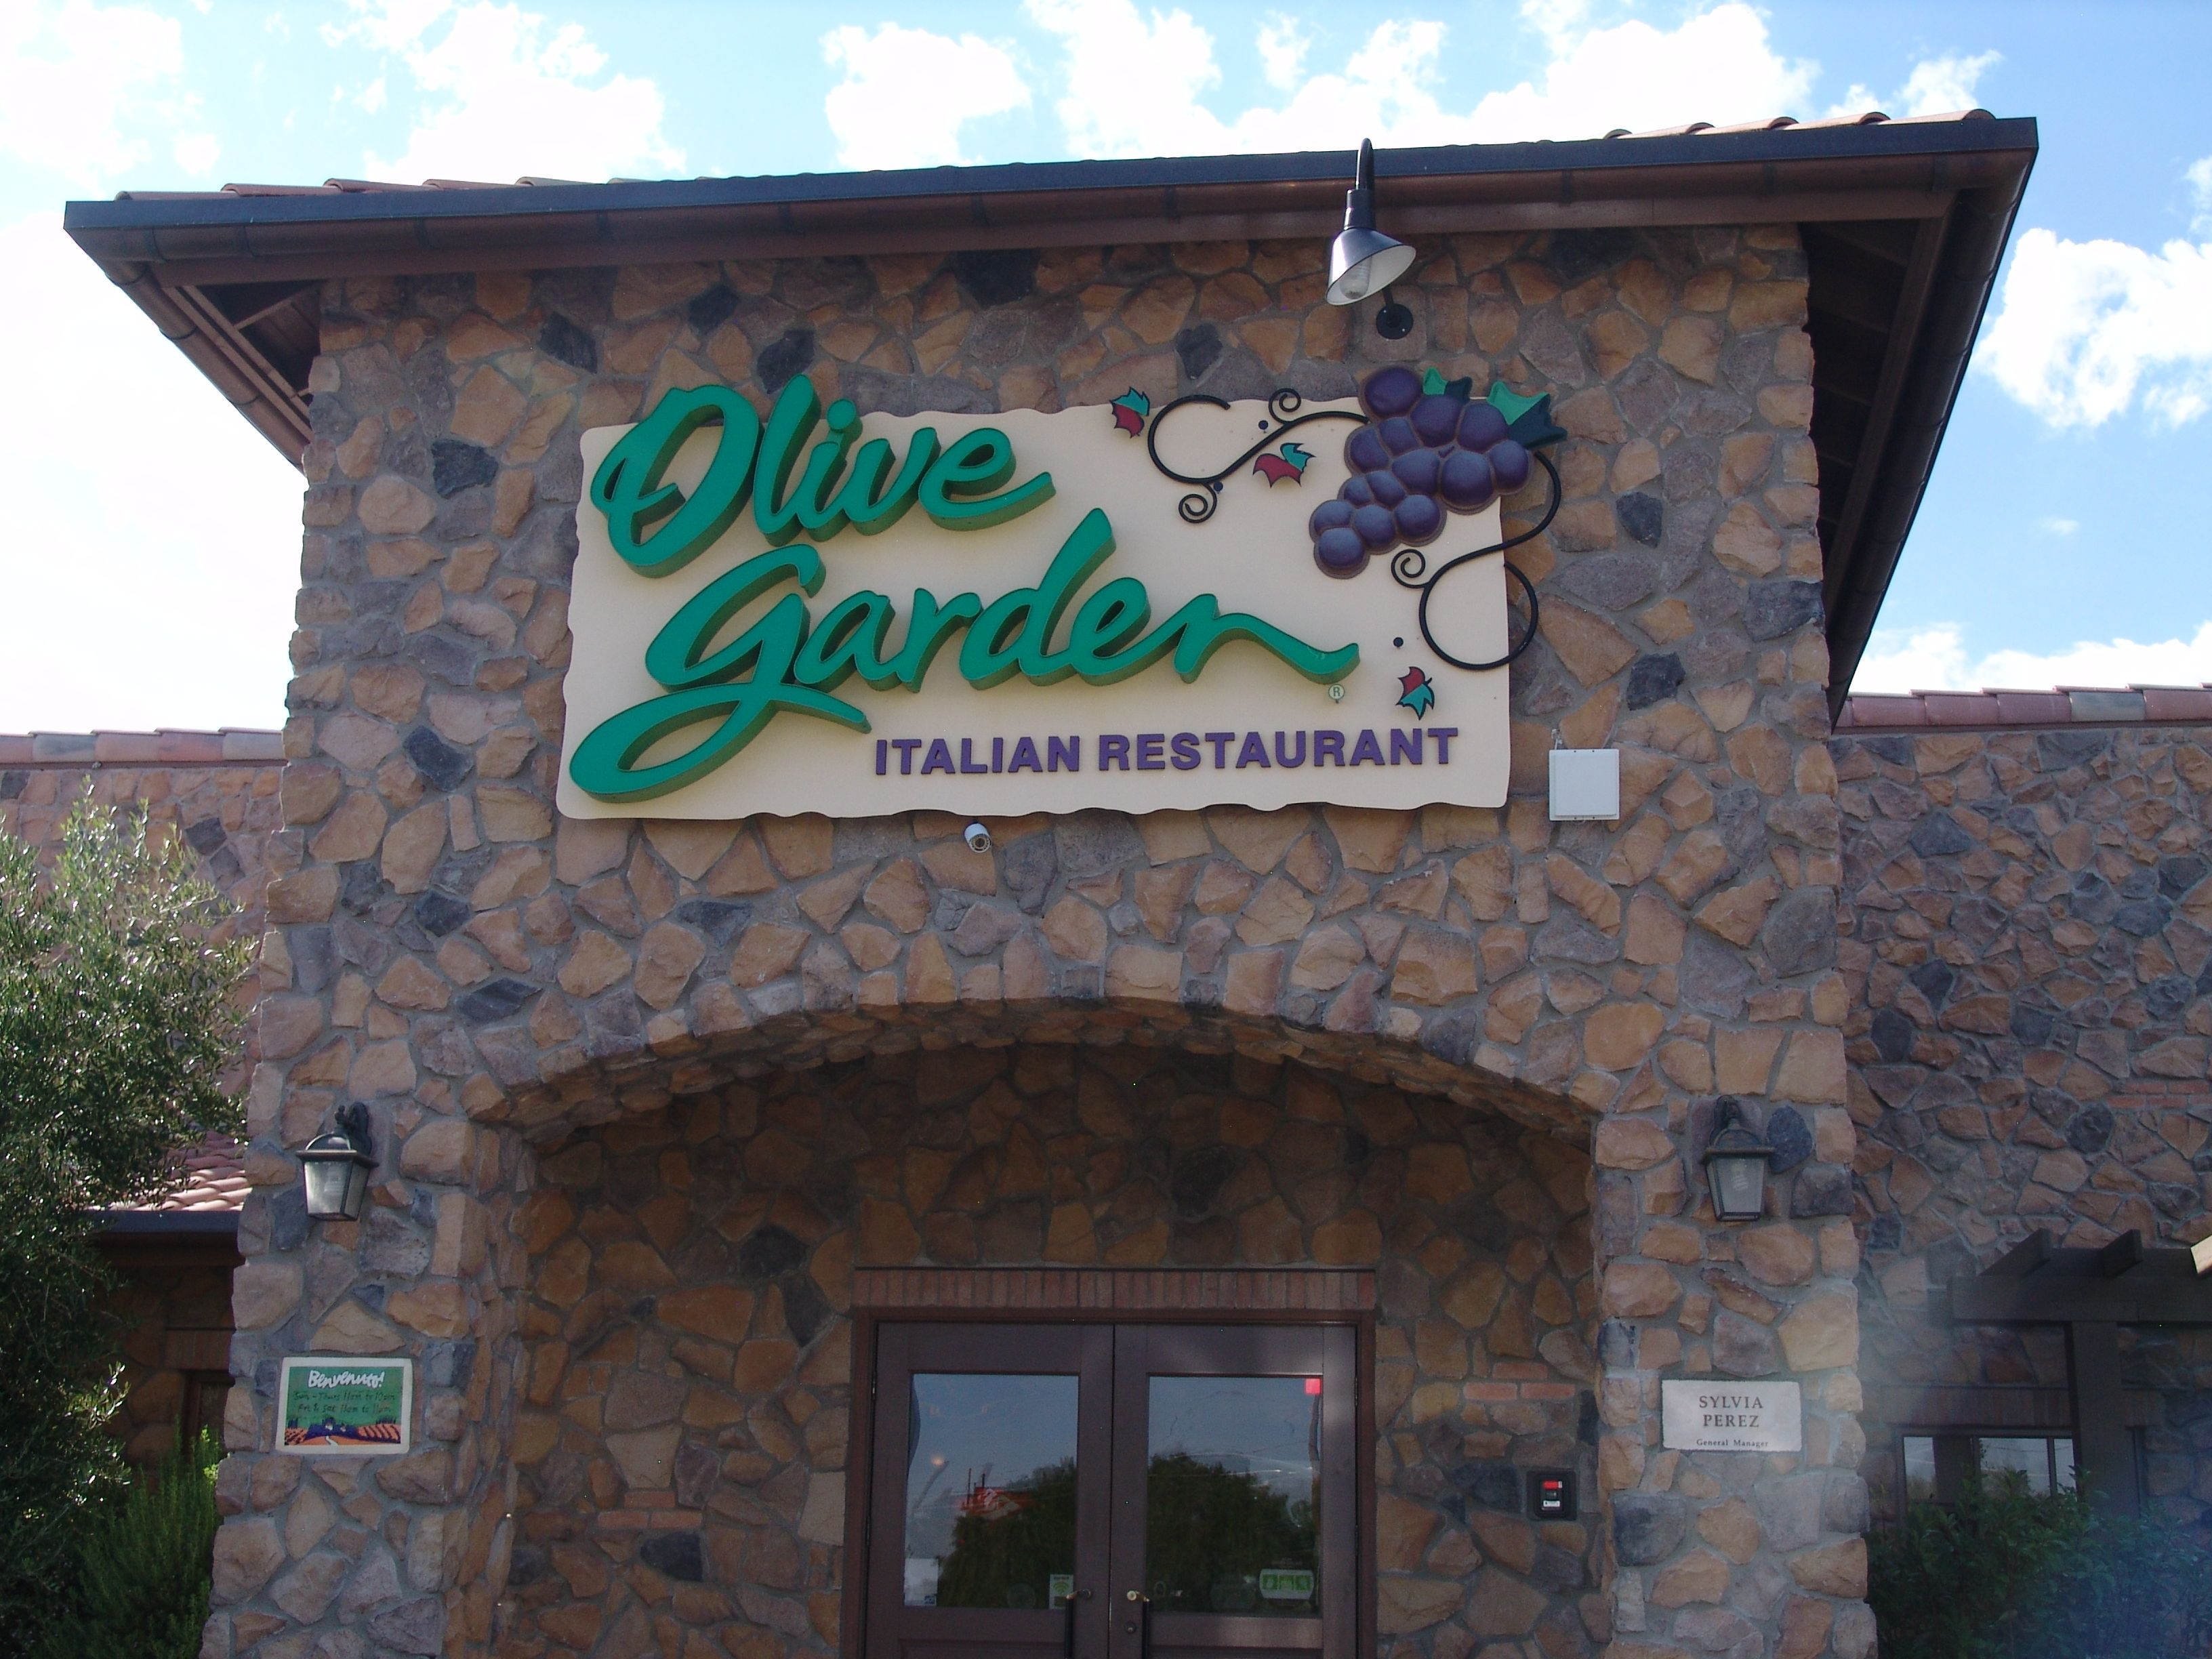 Enjoy a meal at our local olive garden italian restaurant